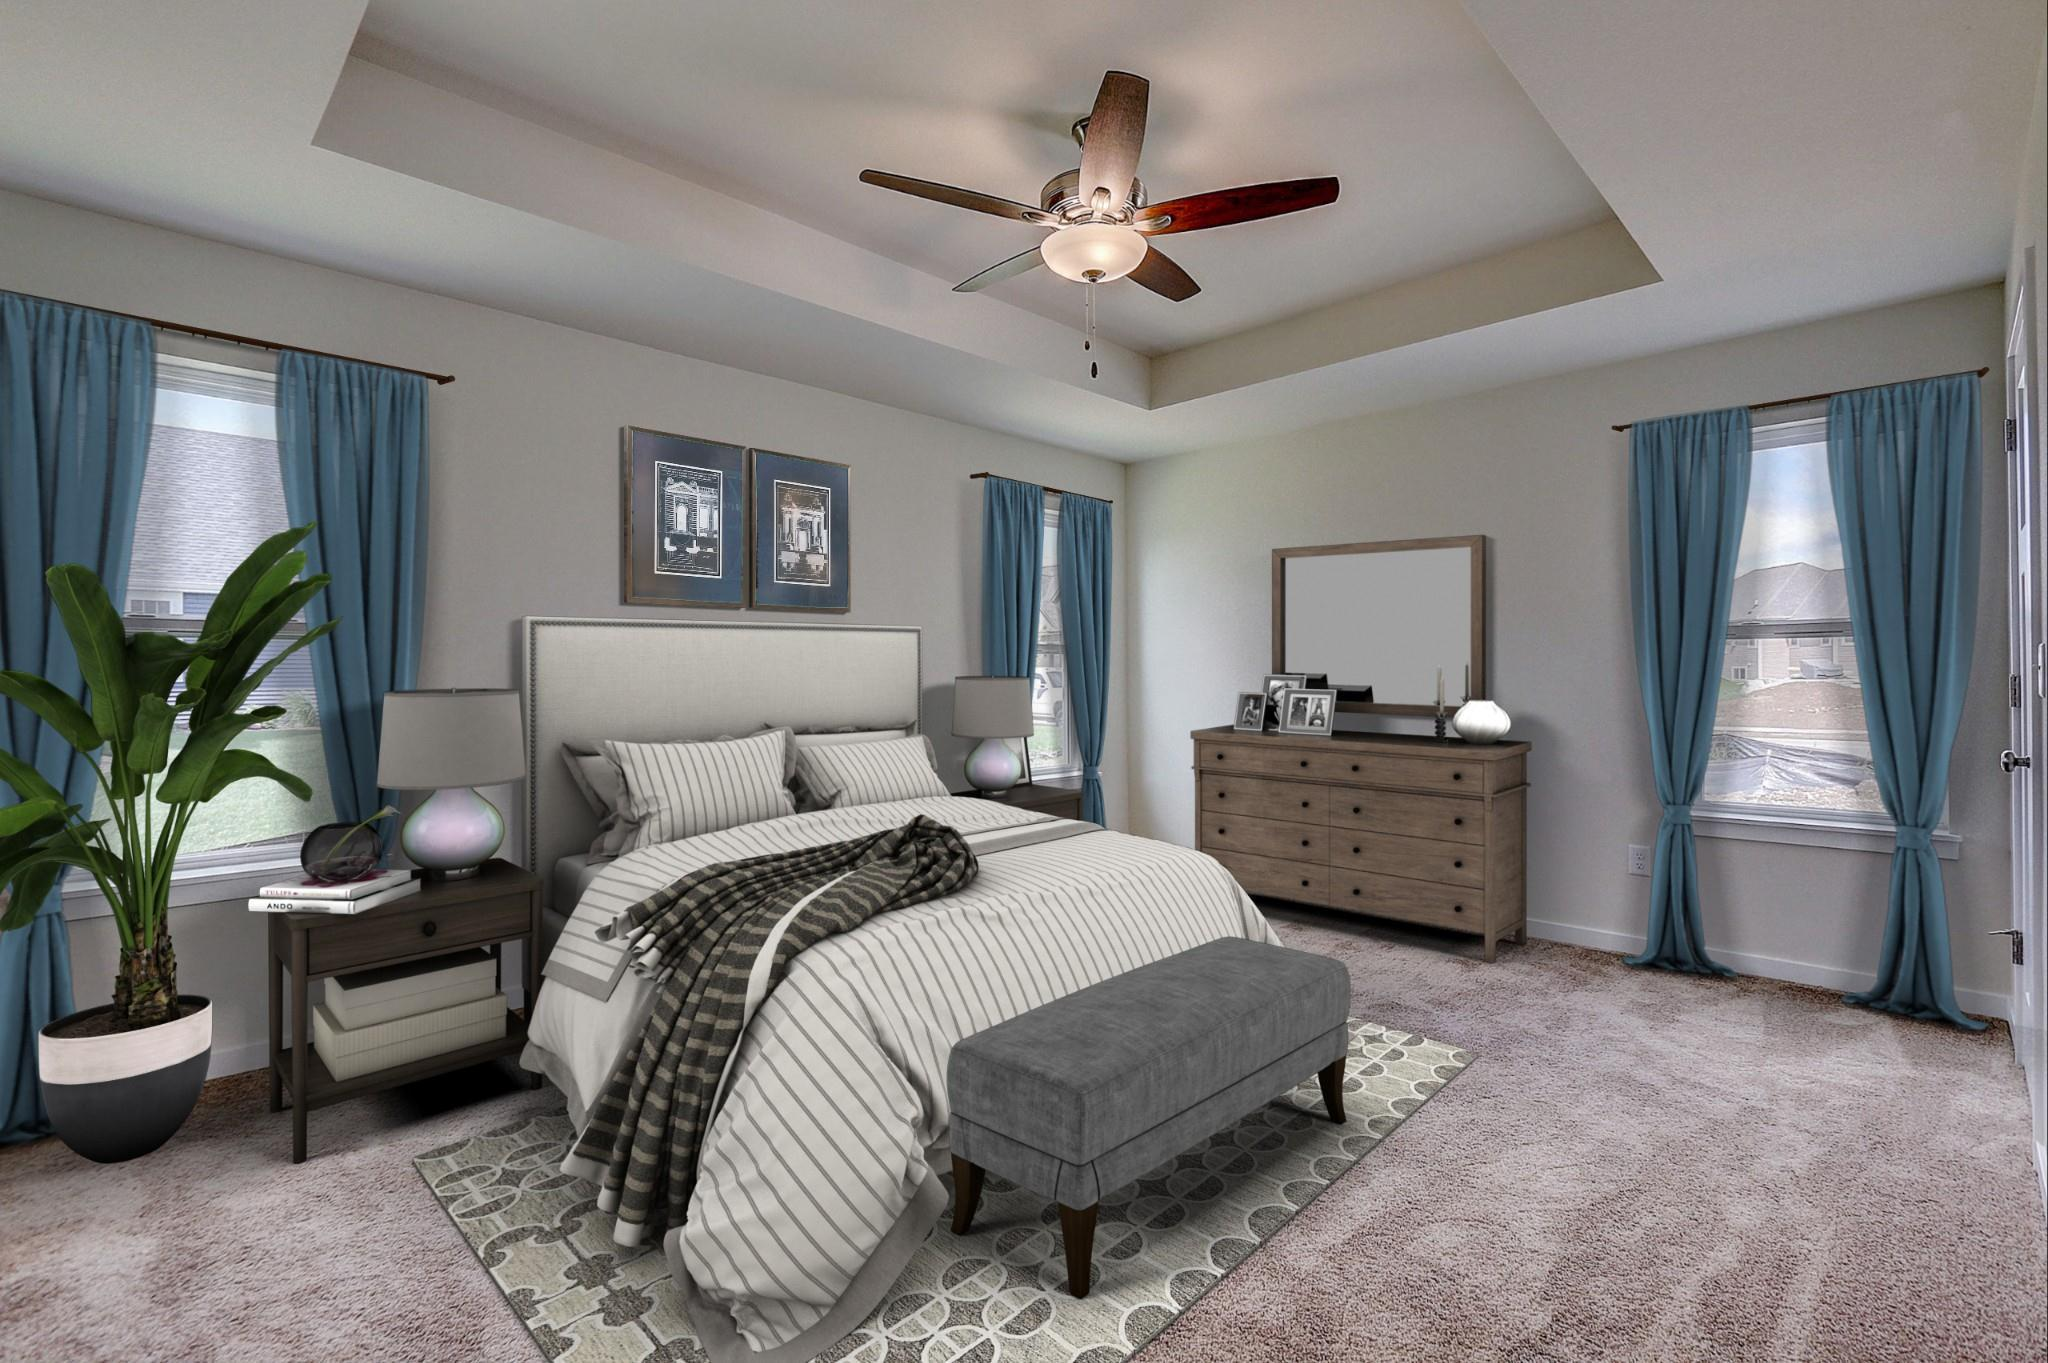 Bedroom featured in the Saybrook By Harbor Homes in Ozaukee-Sheboygan, WI